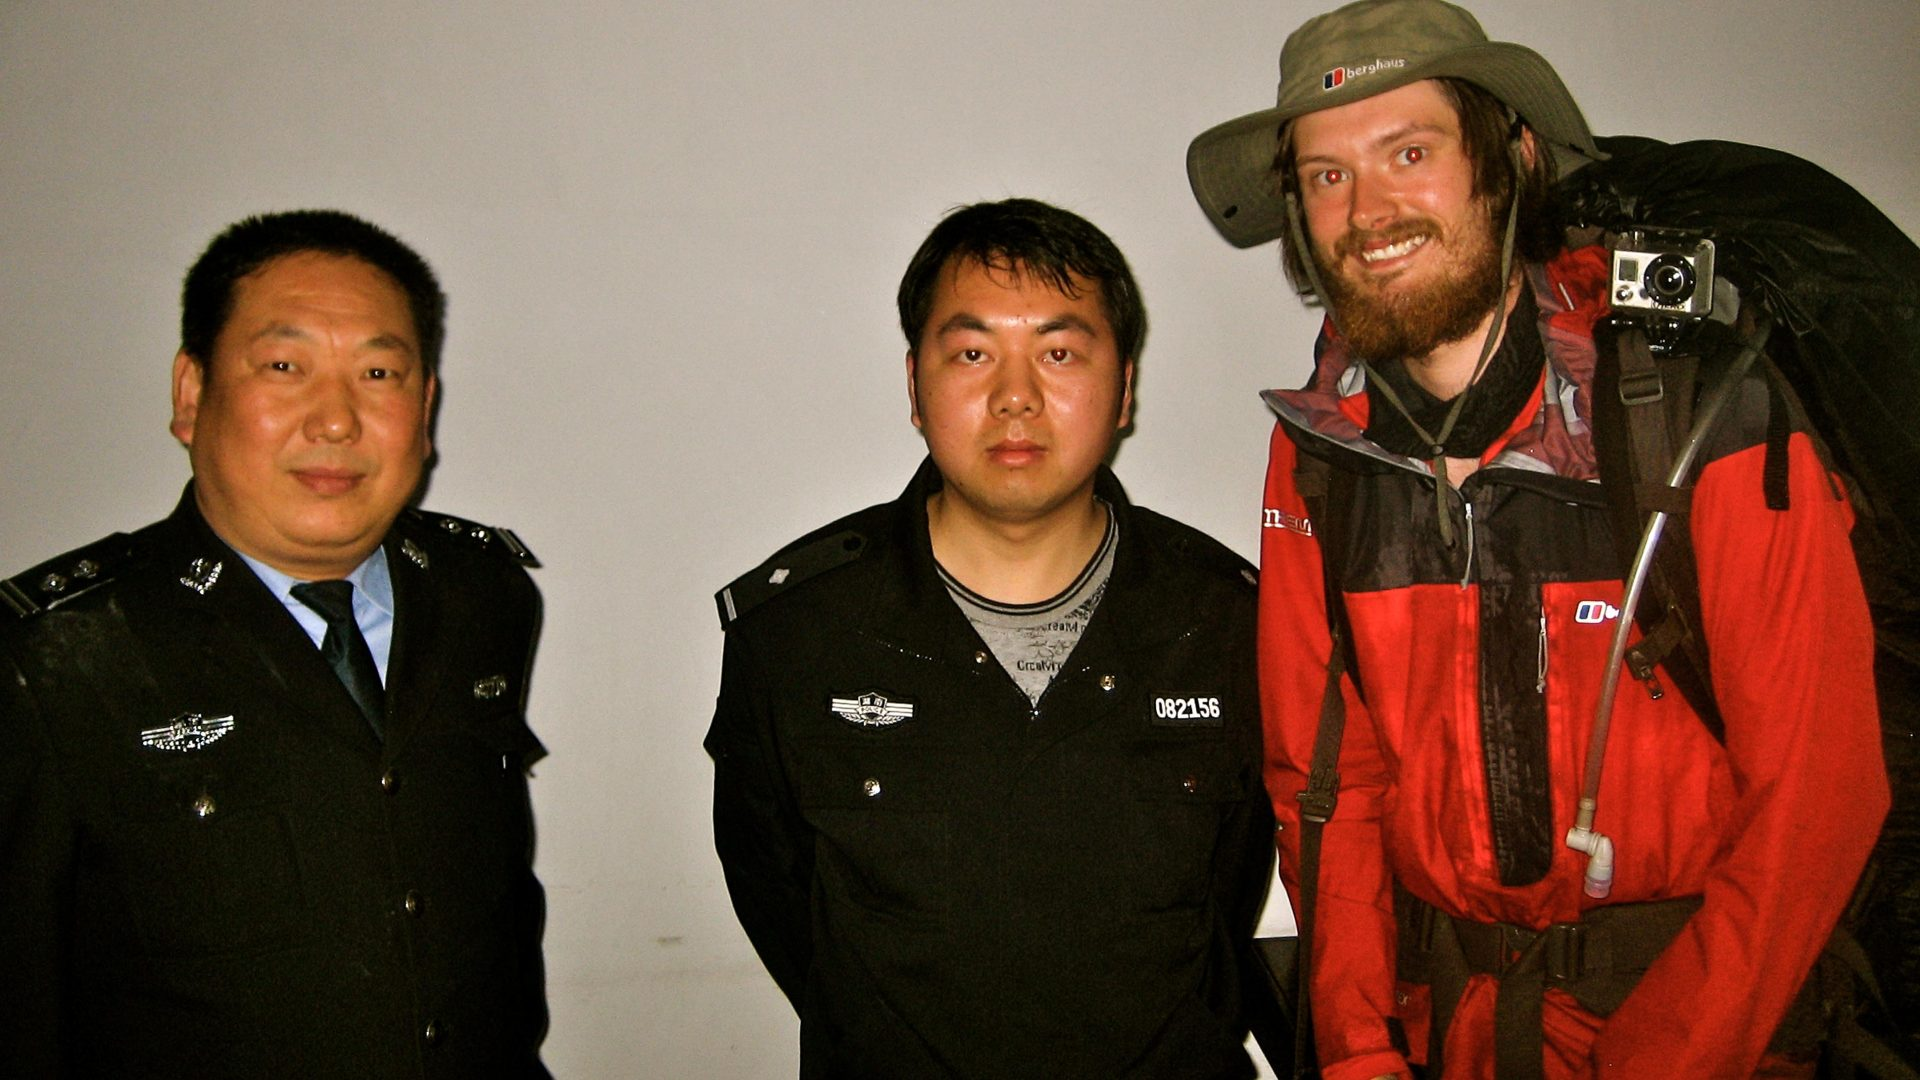 An unplanned meeting with the Chinese police.